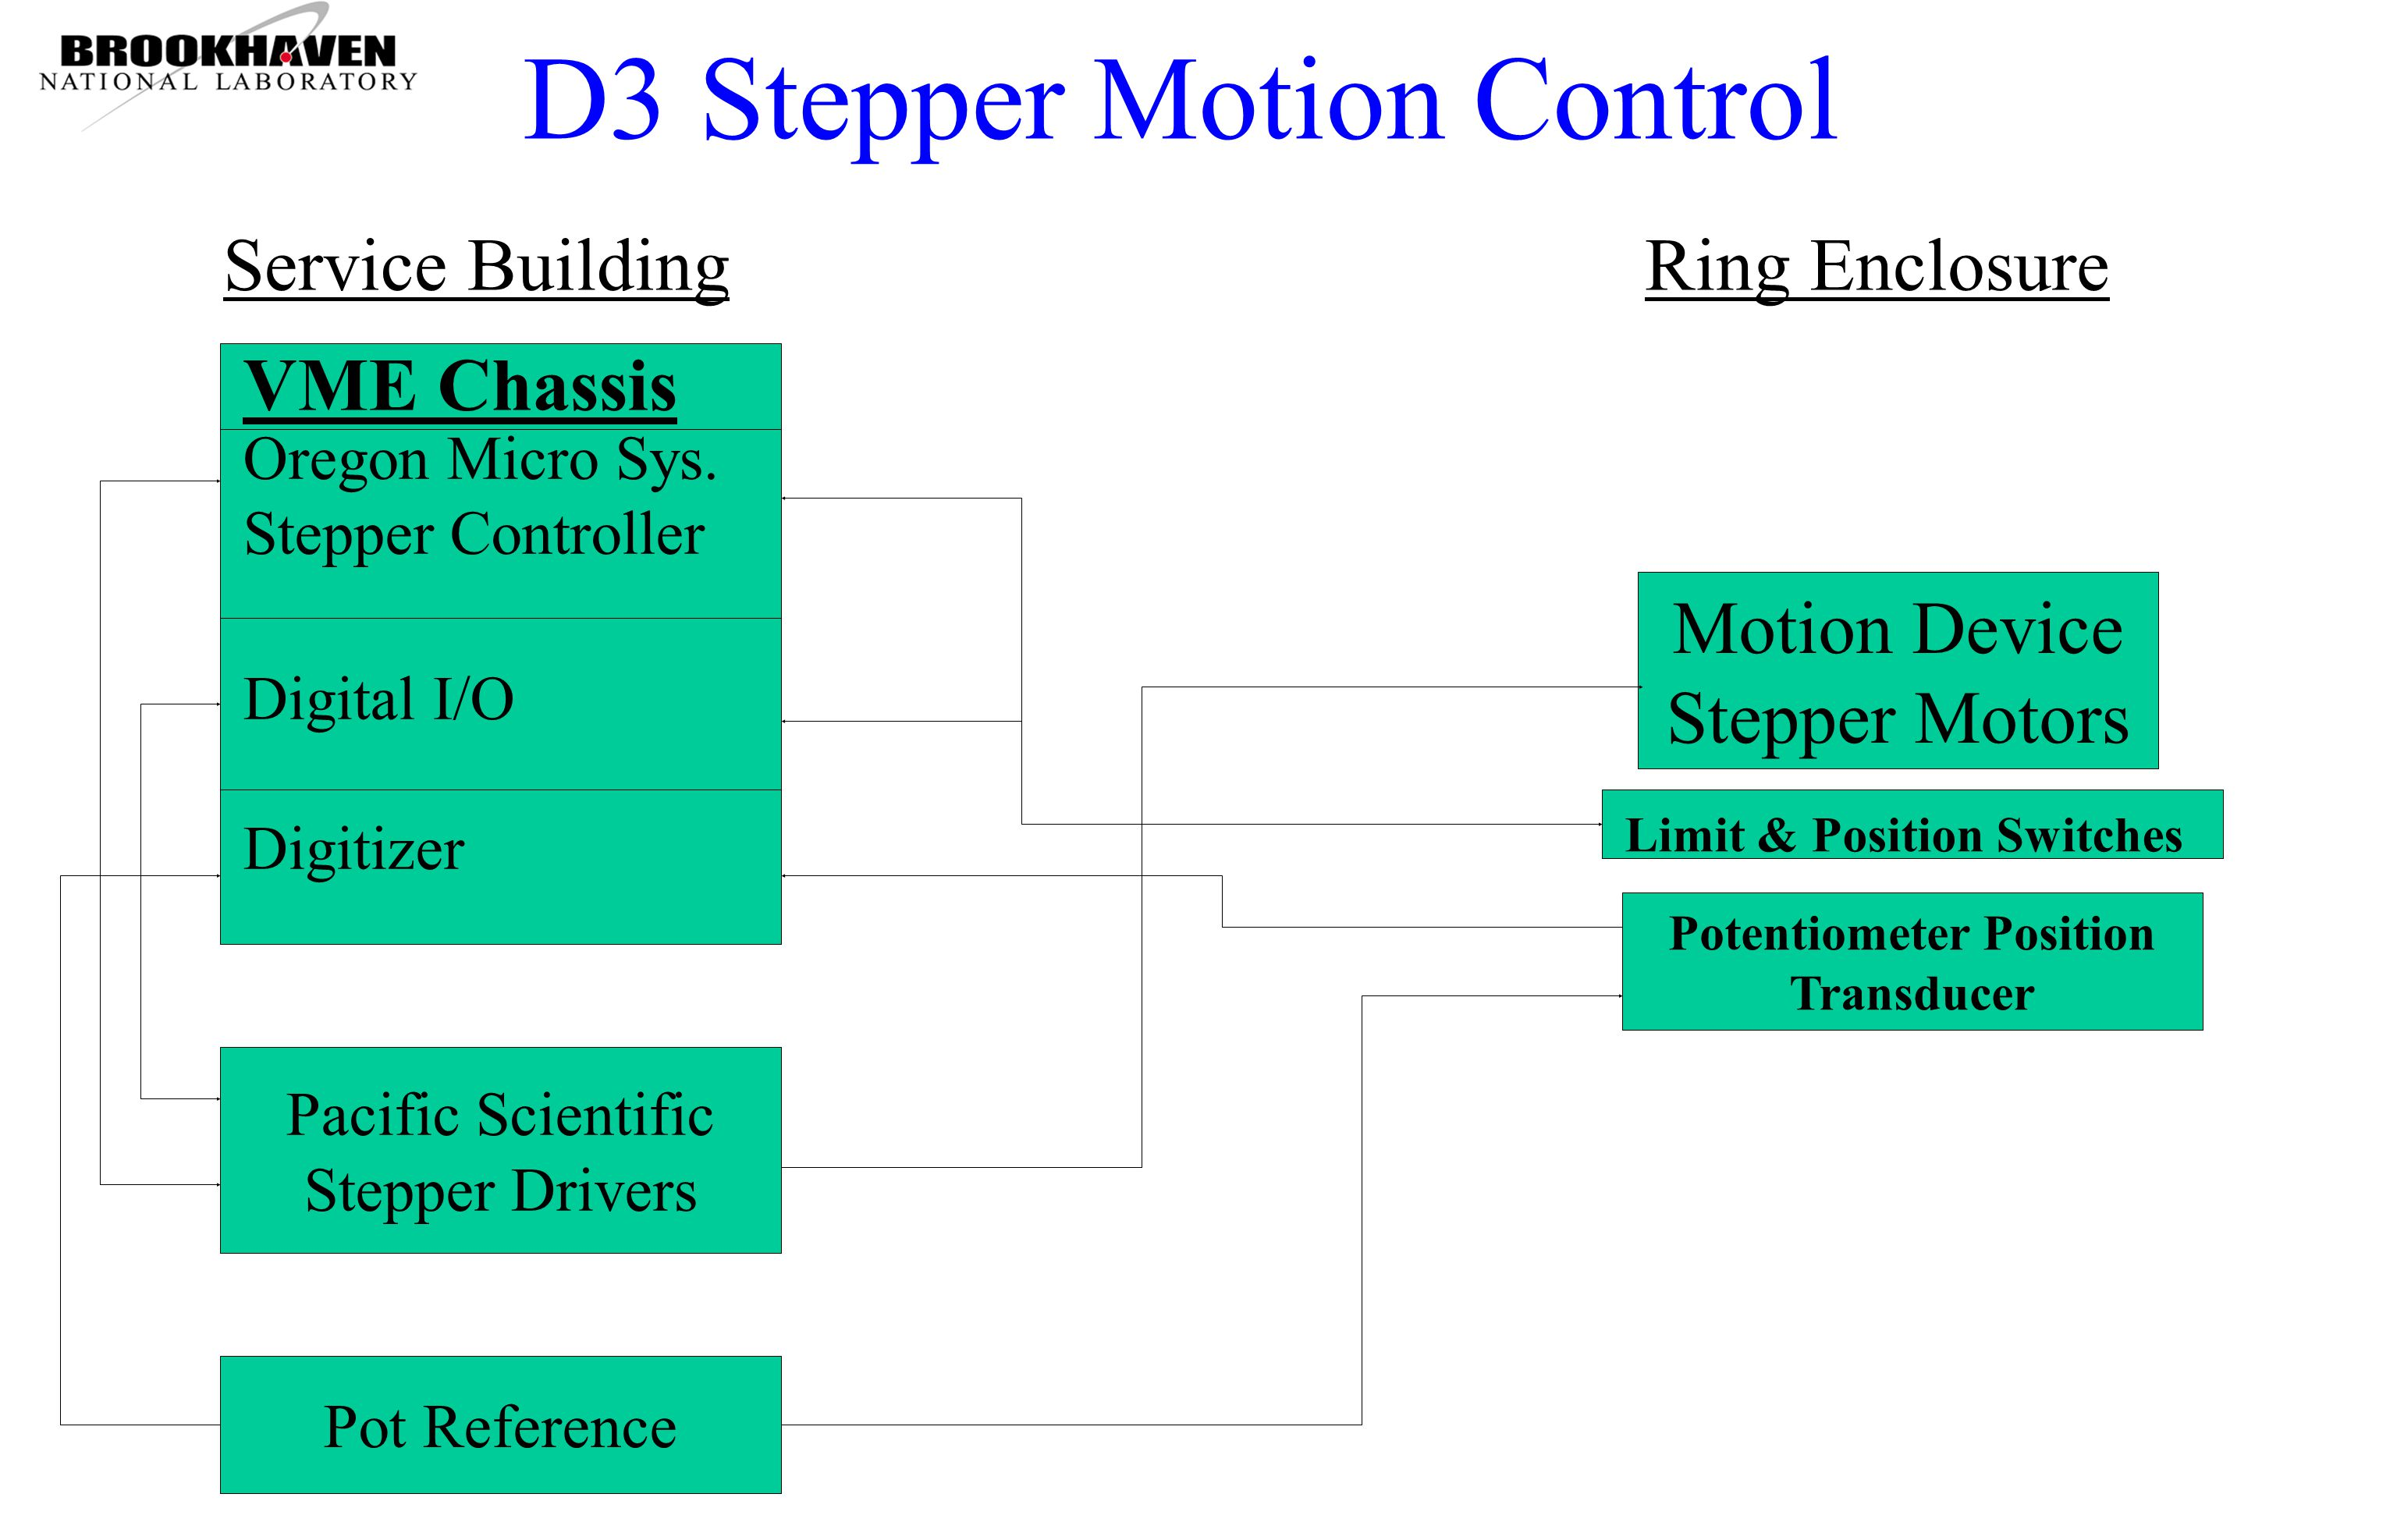 D3 Stepper Motion Control Oregon Micro Sys.